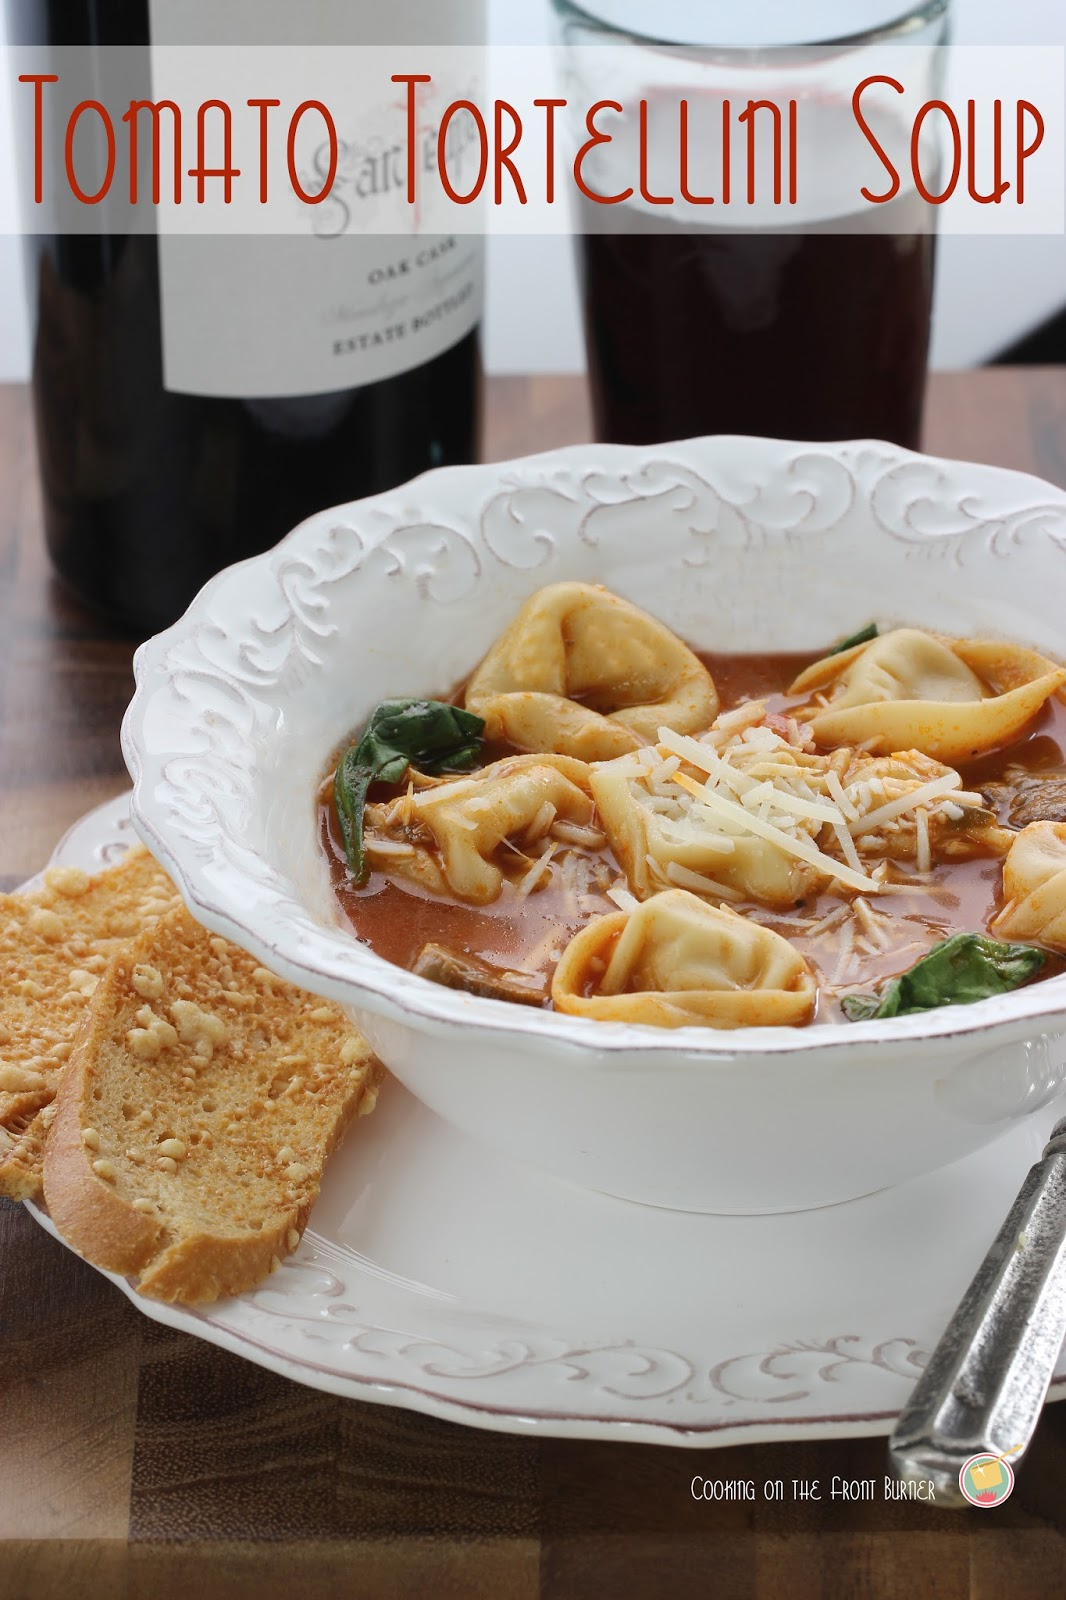 Tomato Tortellini Soup | Cooking on the Front Burner #soup